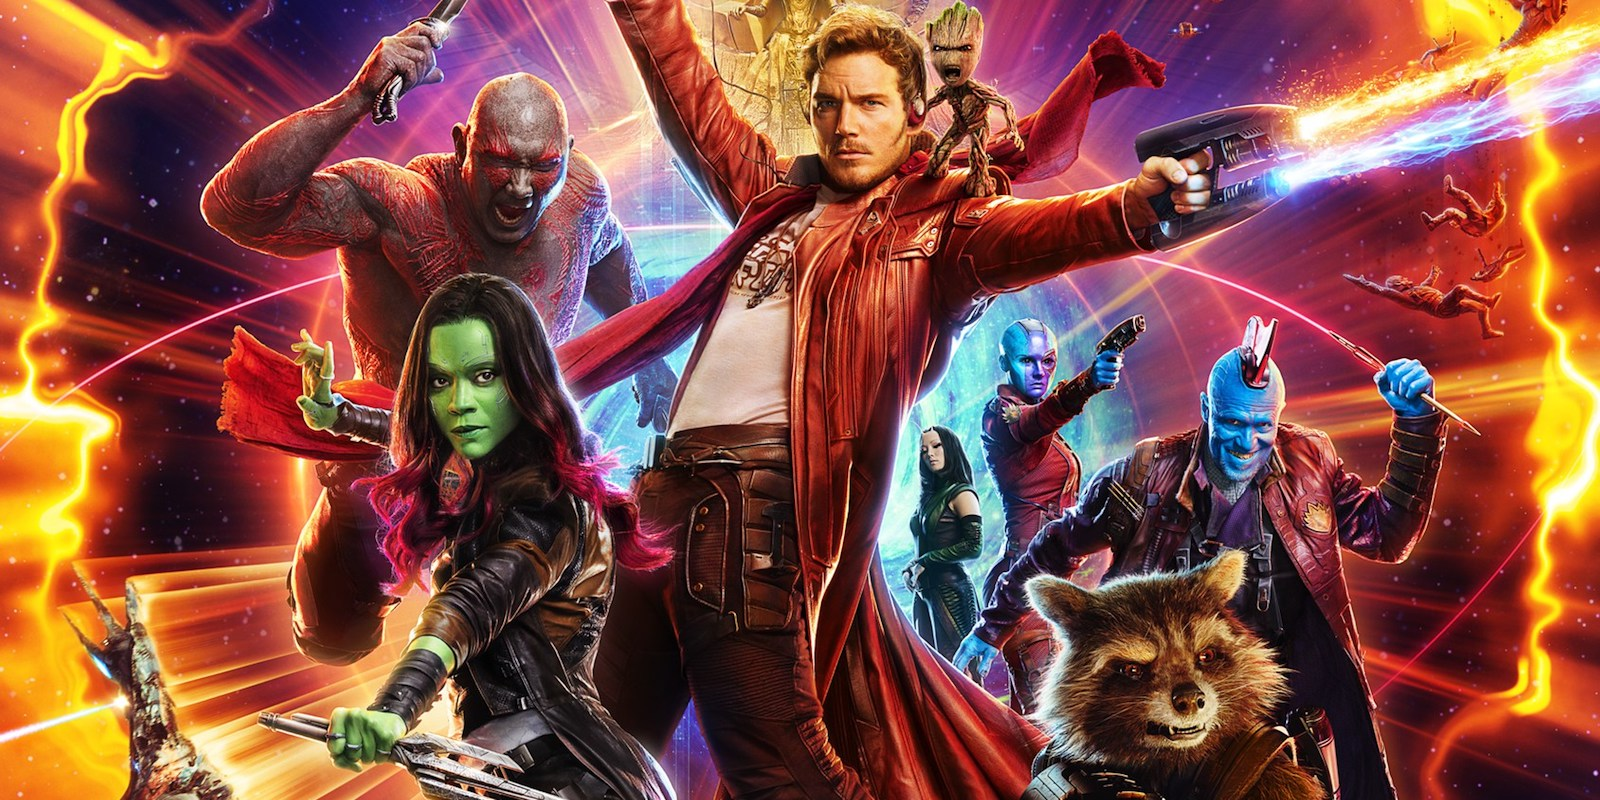 Guardians Of The Galaxy Awesome Mix Vol. 2 Track List